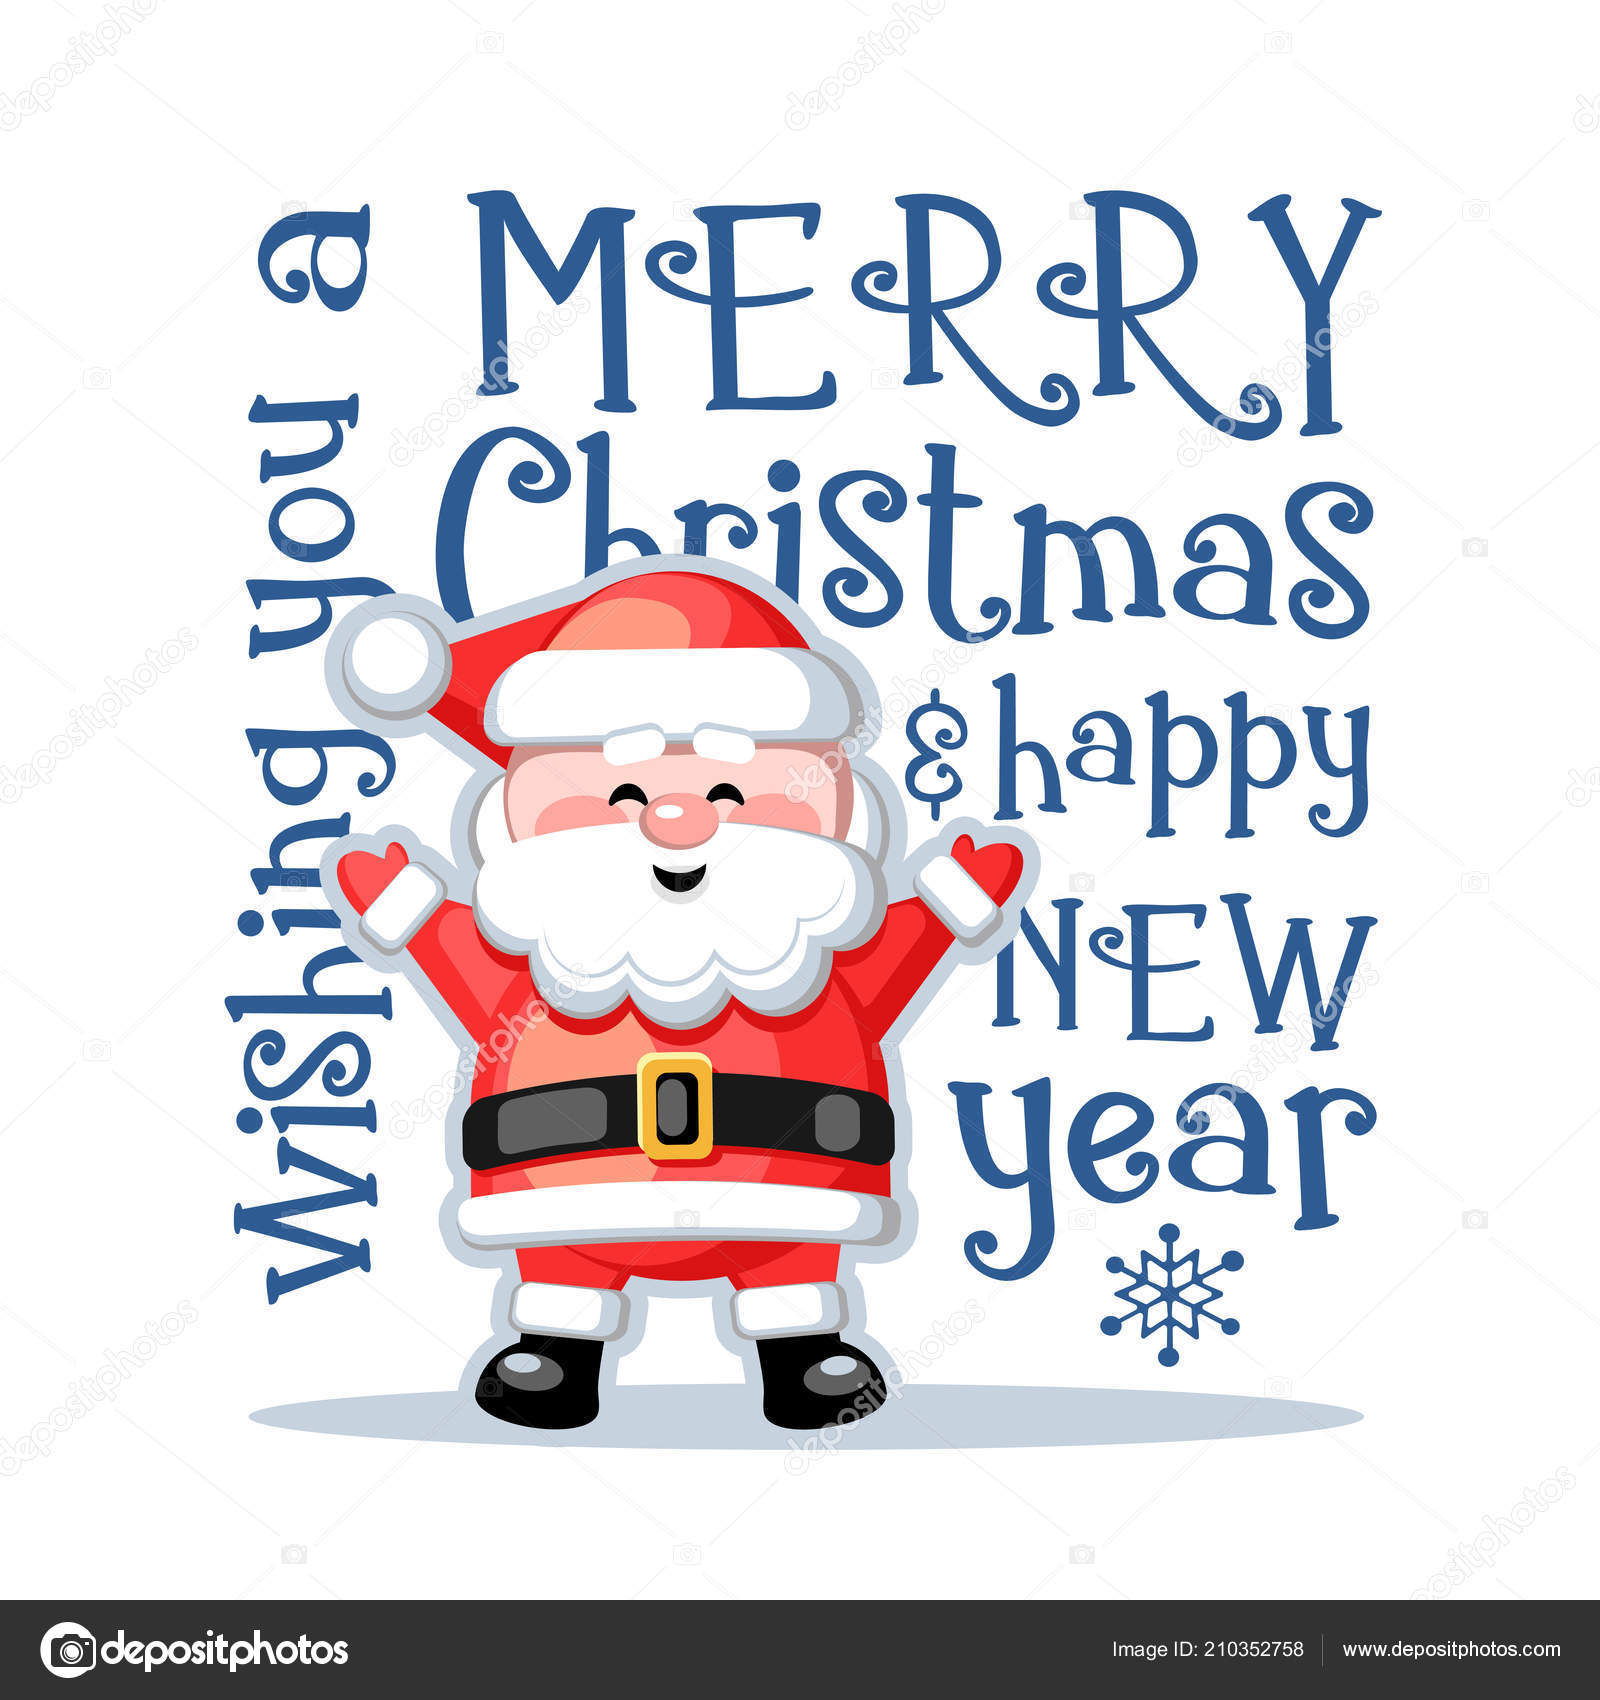 Merry Christmas Happy New Year Greeting Card Funny Santa Claus ...